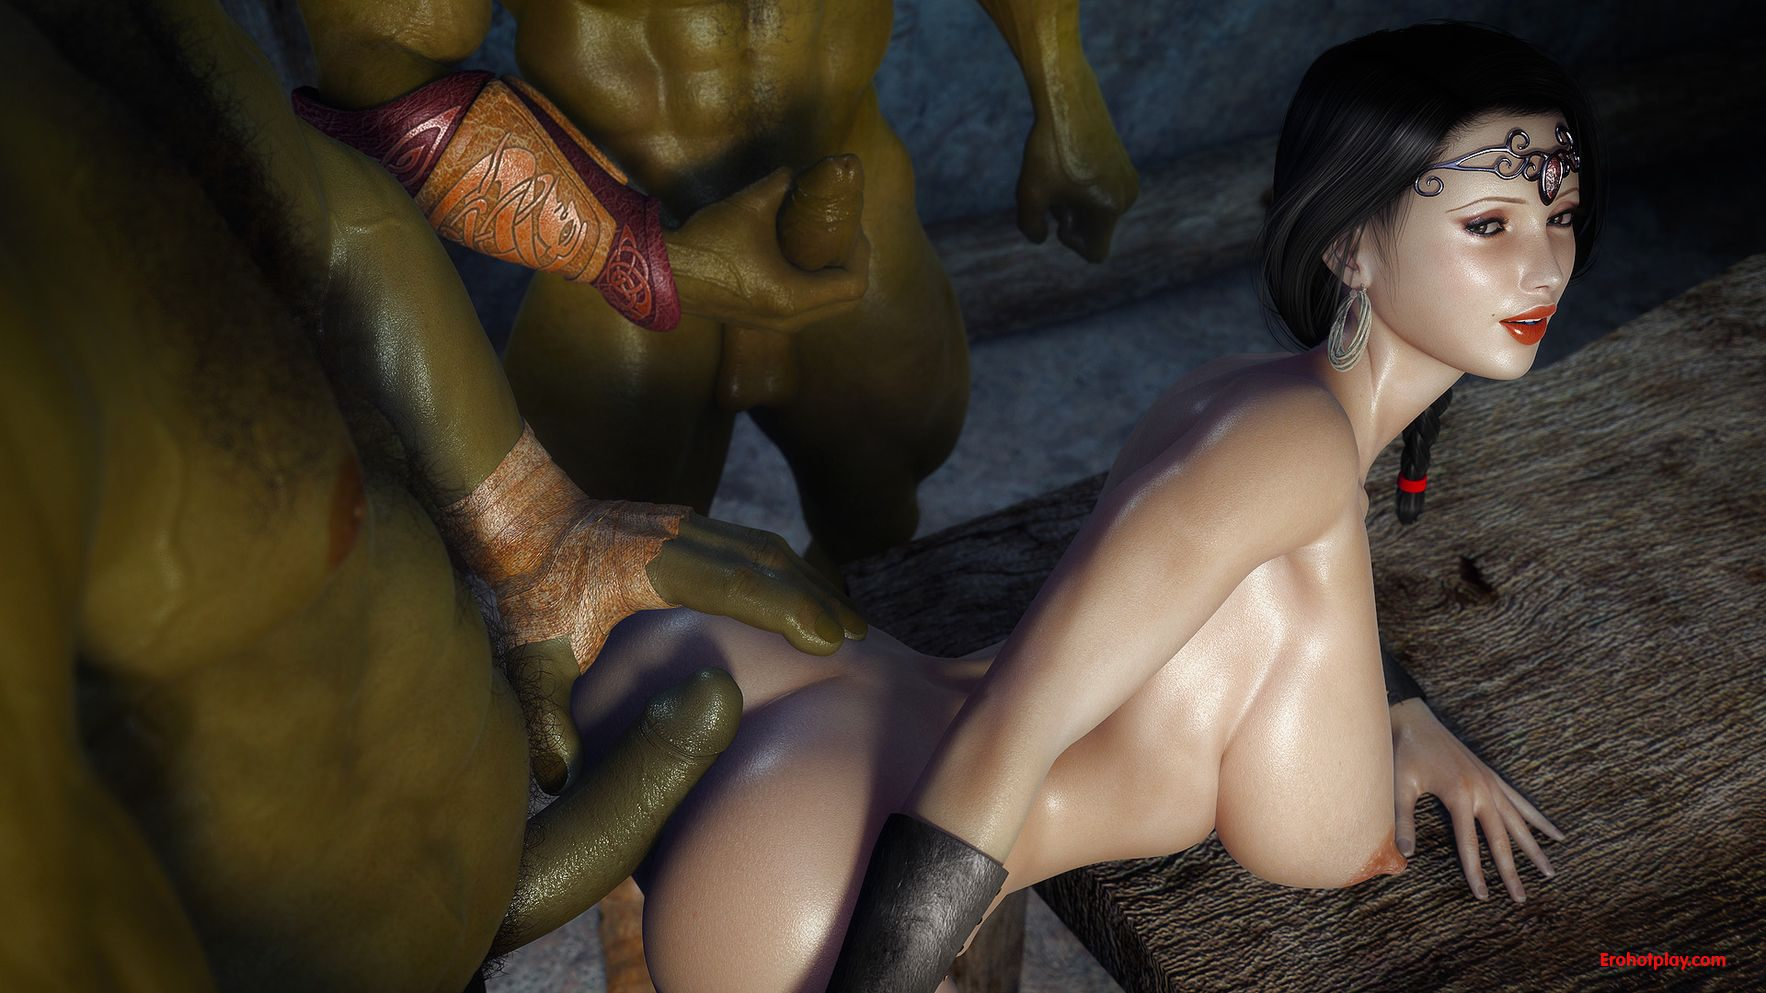 Orcs sex videos exposed video